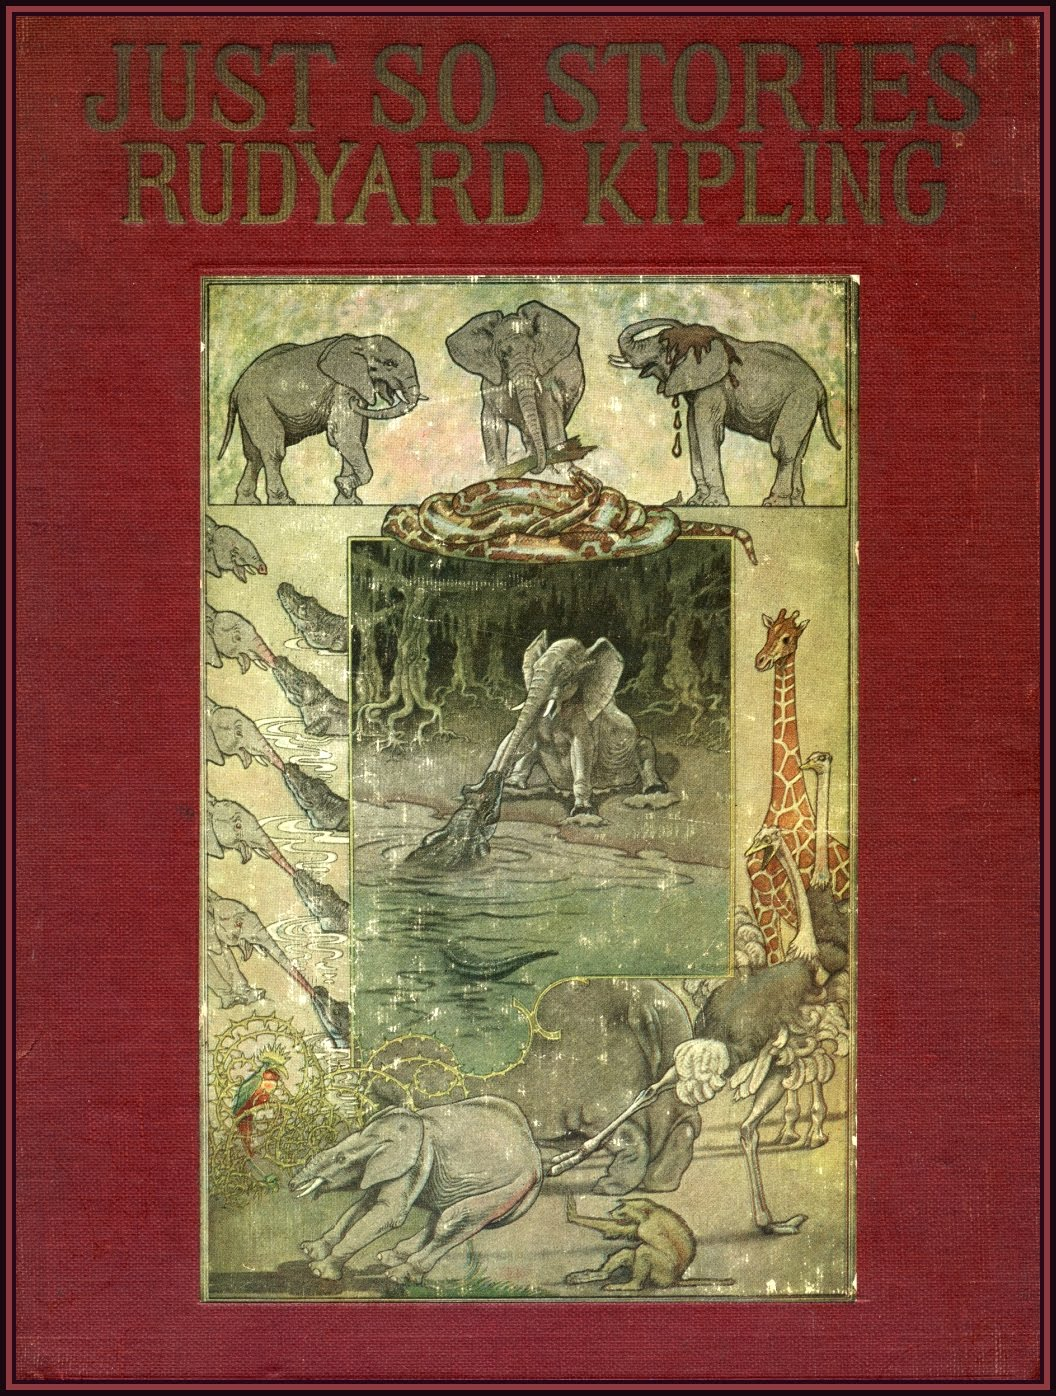 Valiente bestia bobina  The Esoteric Curiosa: The Imperial Scribe Of The British Empire: Rudyard  Kipling's Life & Times